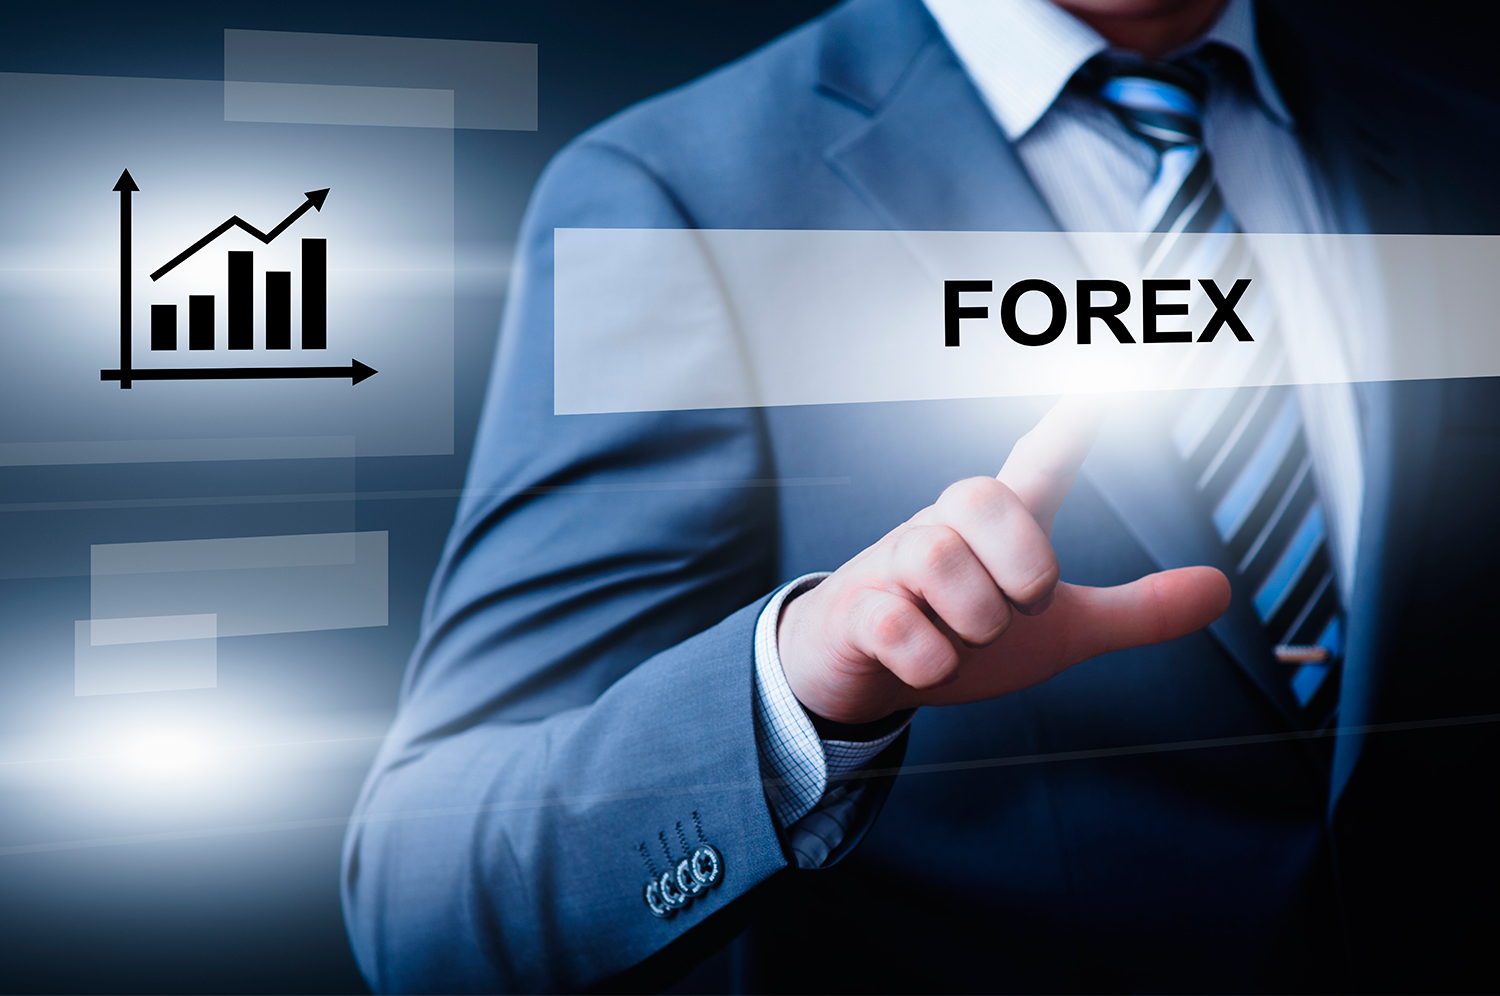 download free forex indicators